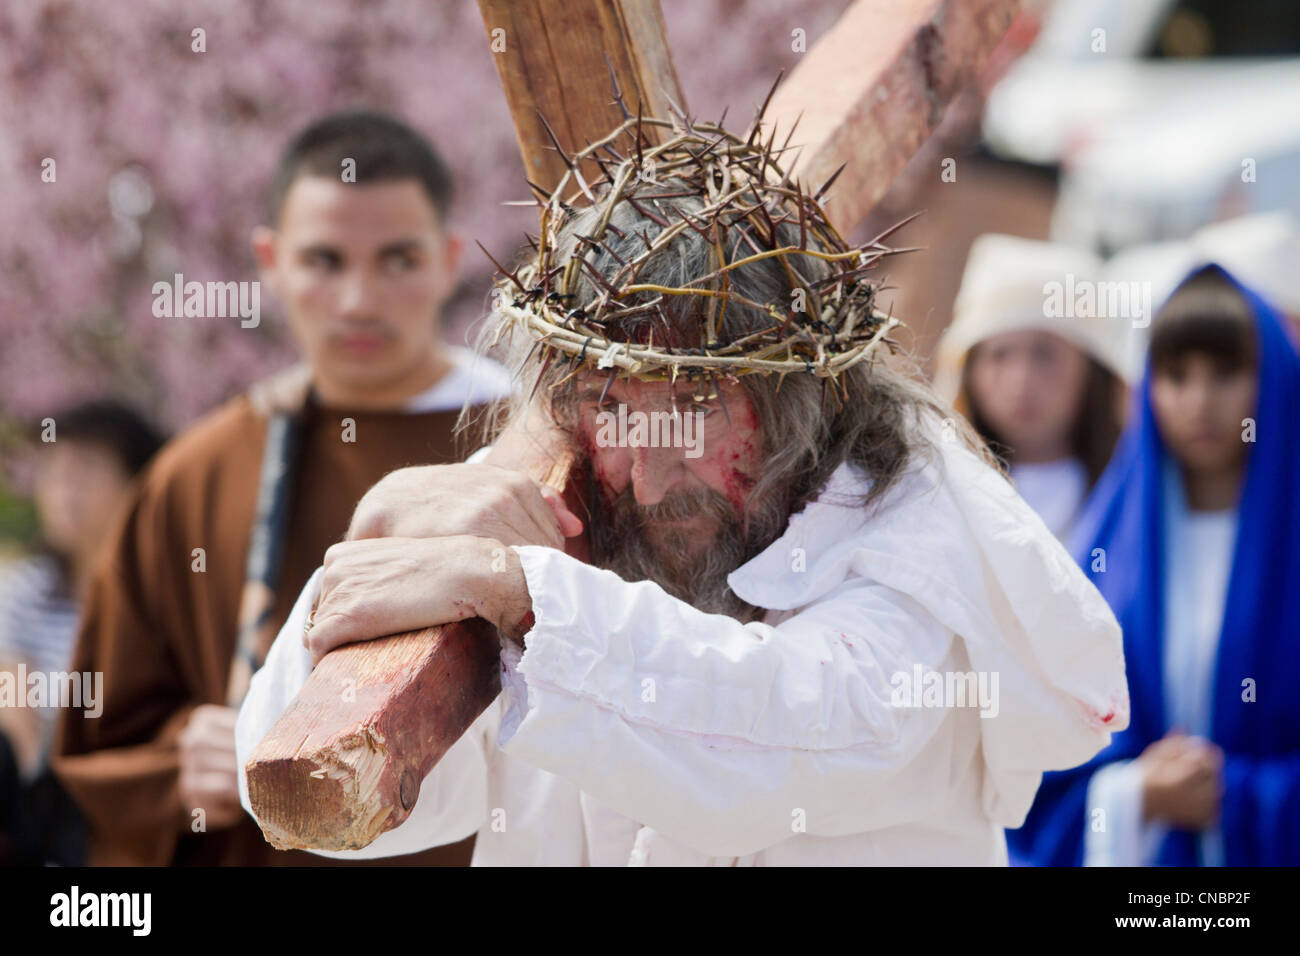 Re-enactement of the Passion of the Christ during Easter celebrations at the Chimayo Sanctuary, New Mexico. - Stock Image